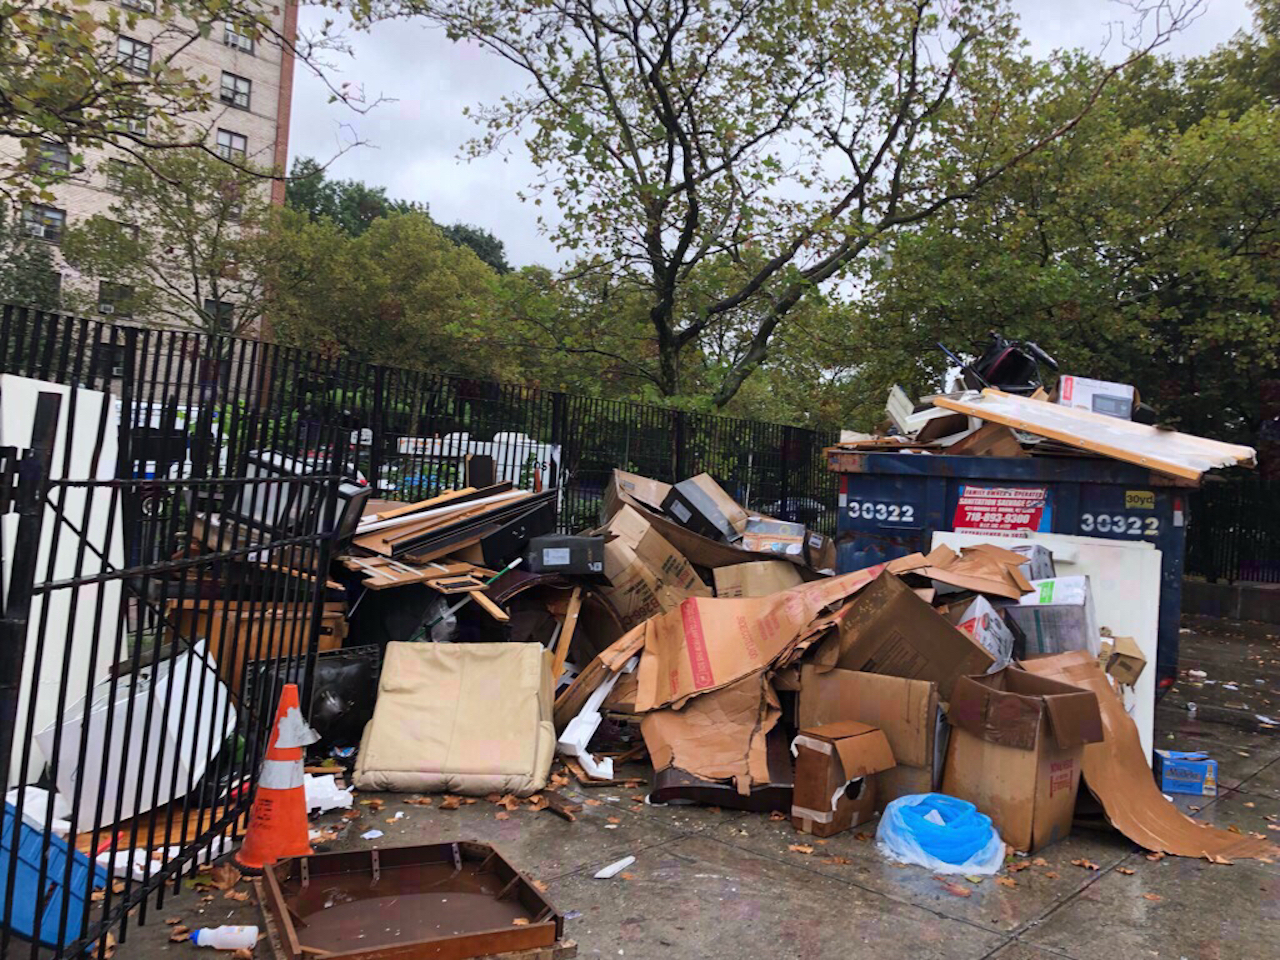 Trash piles up after NYCHA loses contractor